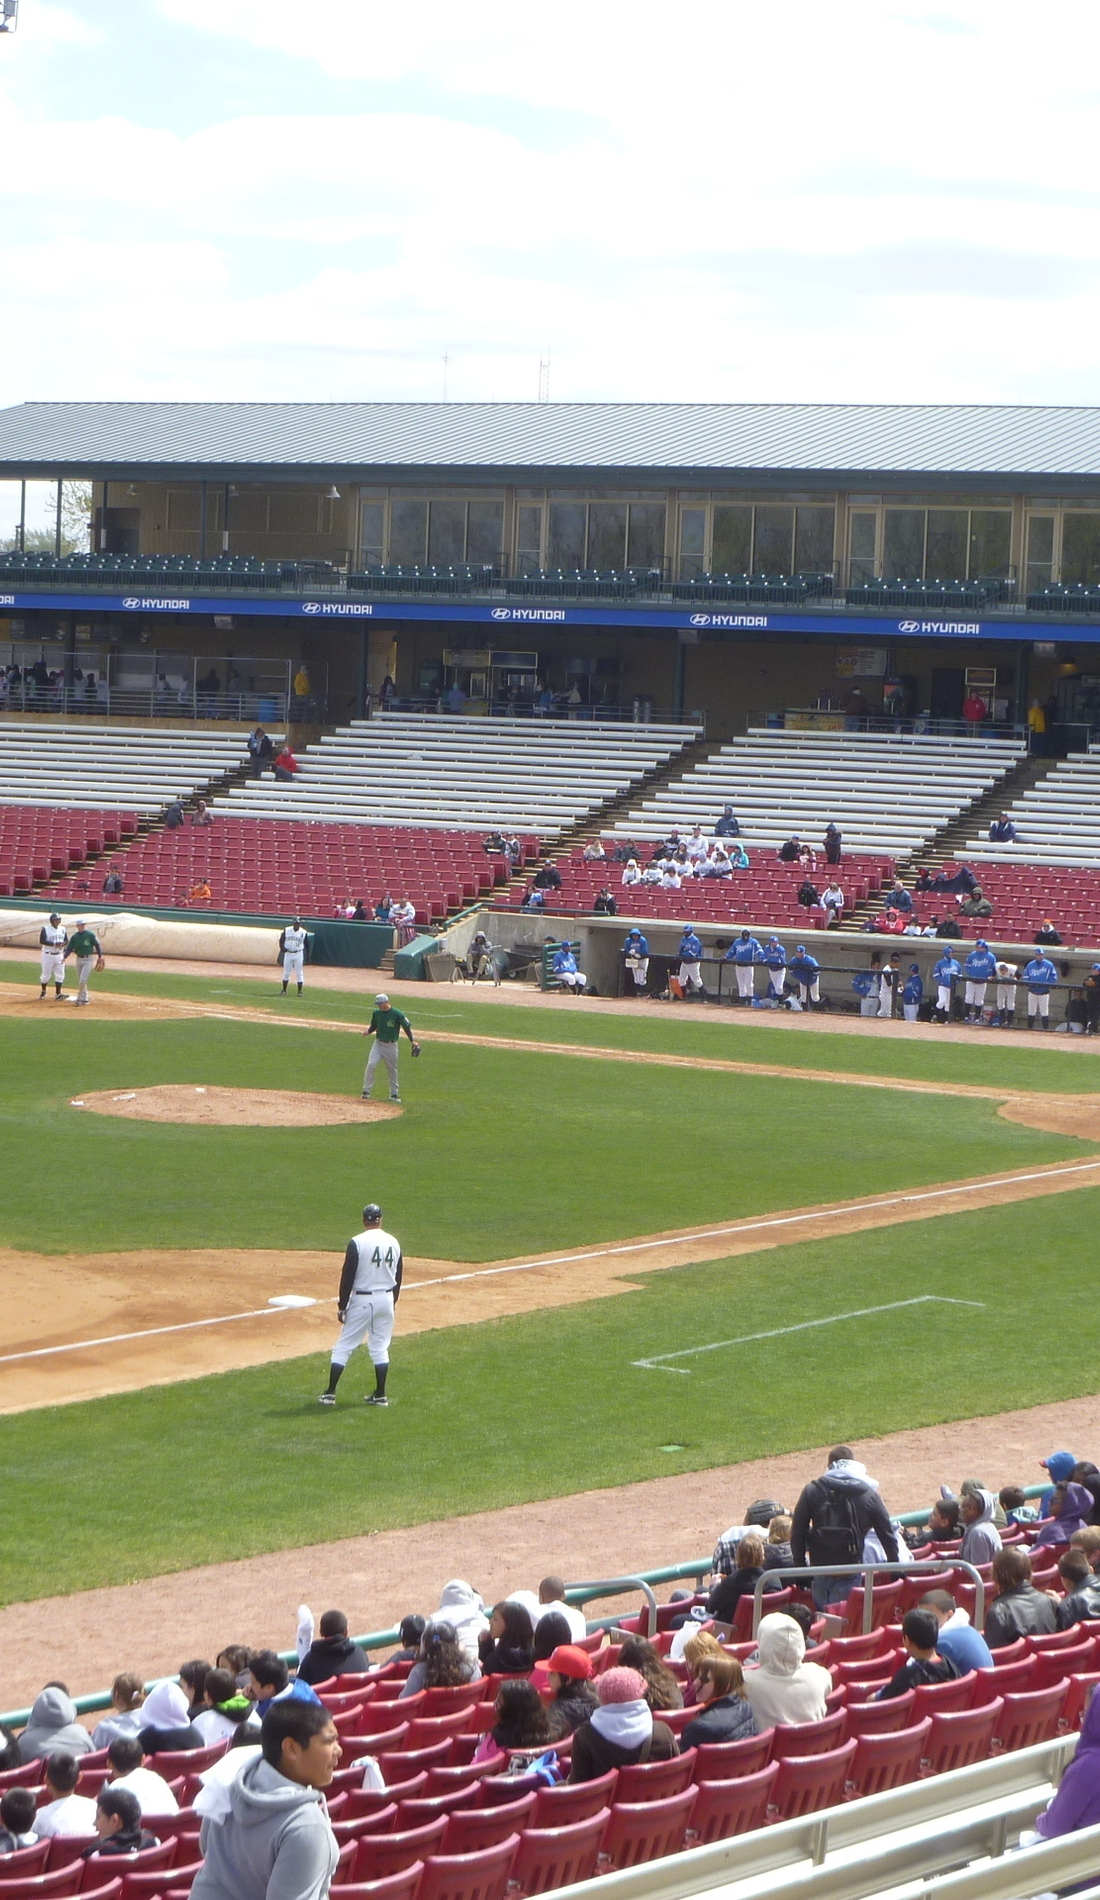 A Kane County Cougars live event